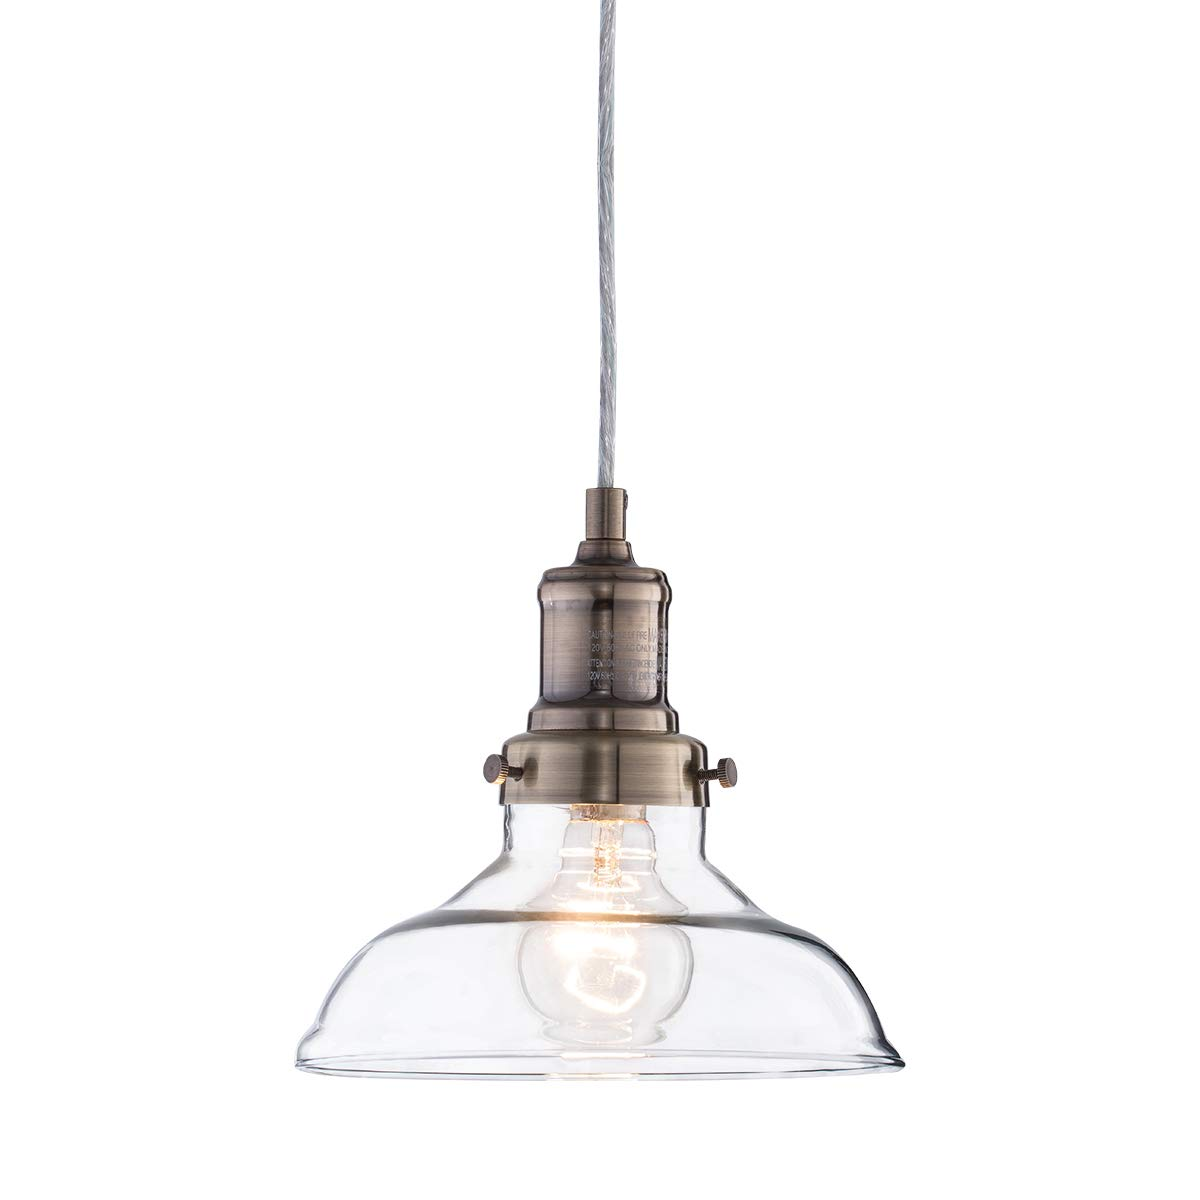 Mini Vintage Clear Glass Pendant Light, Edison Industrial Design Hanging Fixture Lights, Single Bulb Lighting for Kitchen Island, Living Room, Dining Room, 1-Pack by Lanros